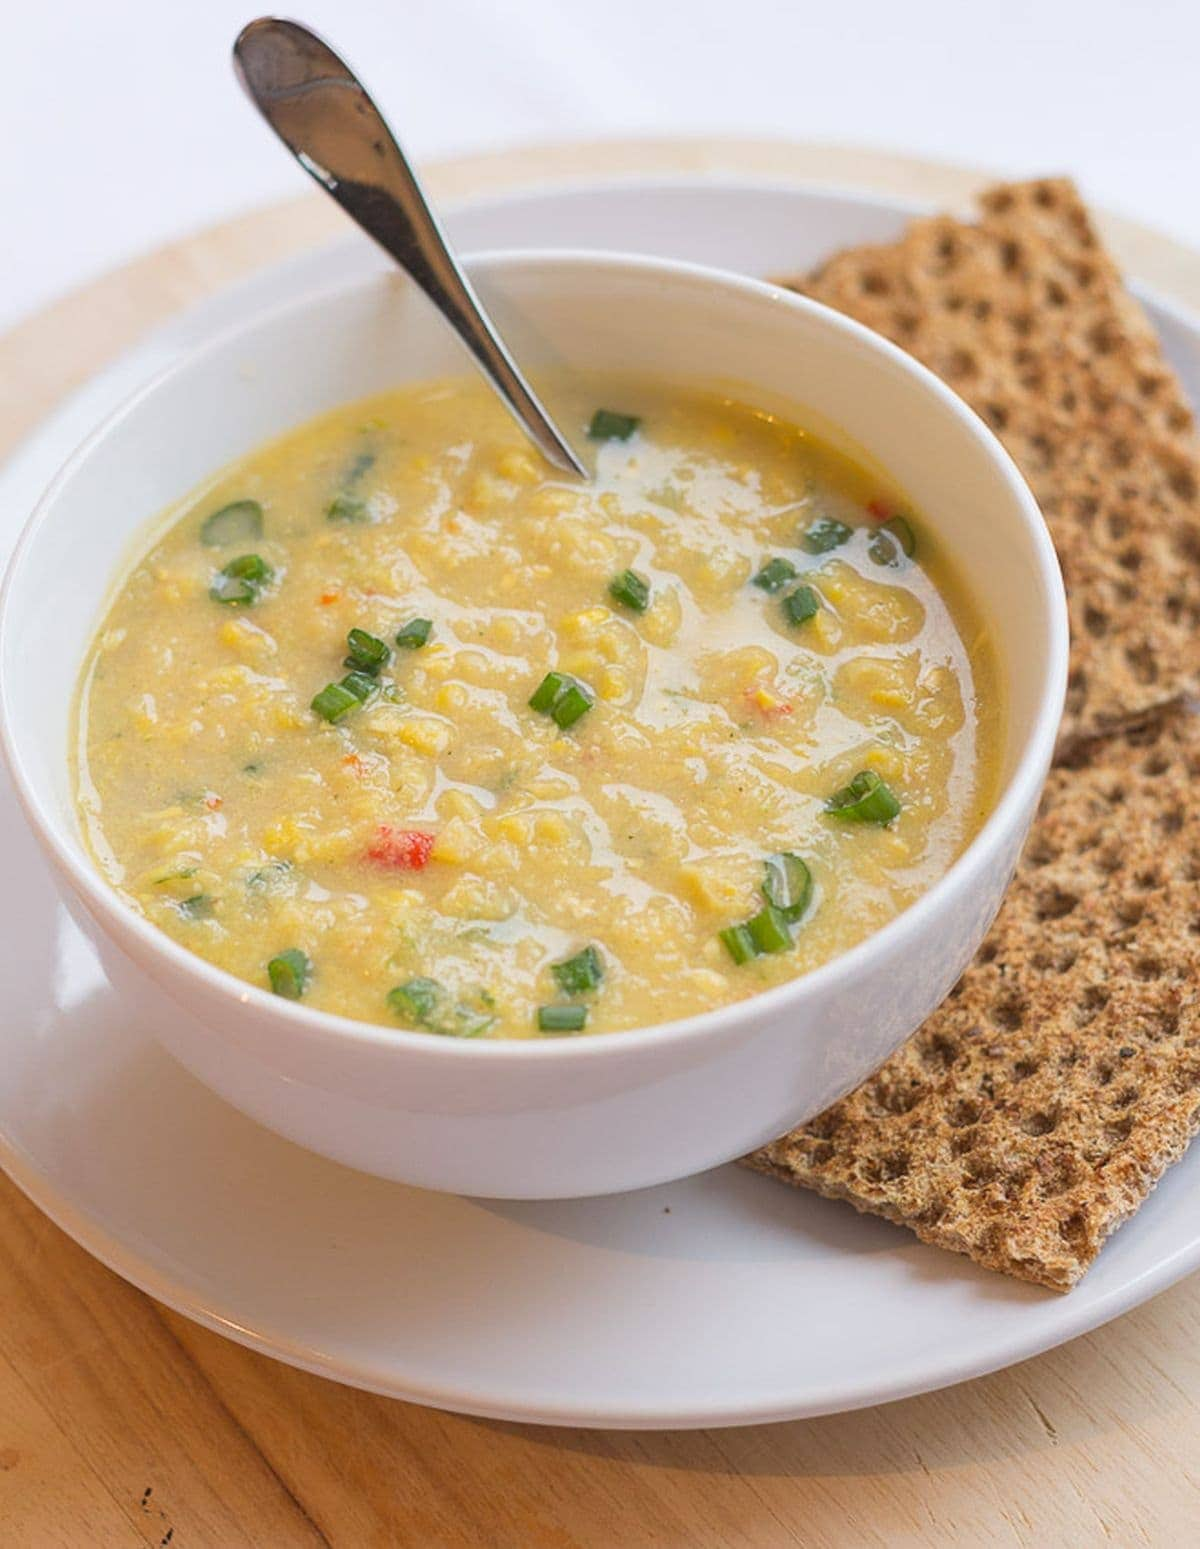 A bowl of creamy sweetcorn chowder with a spoon in. Crispy rye breads to the side.